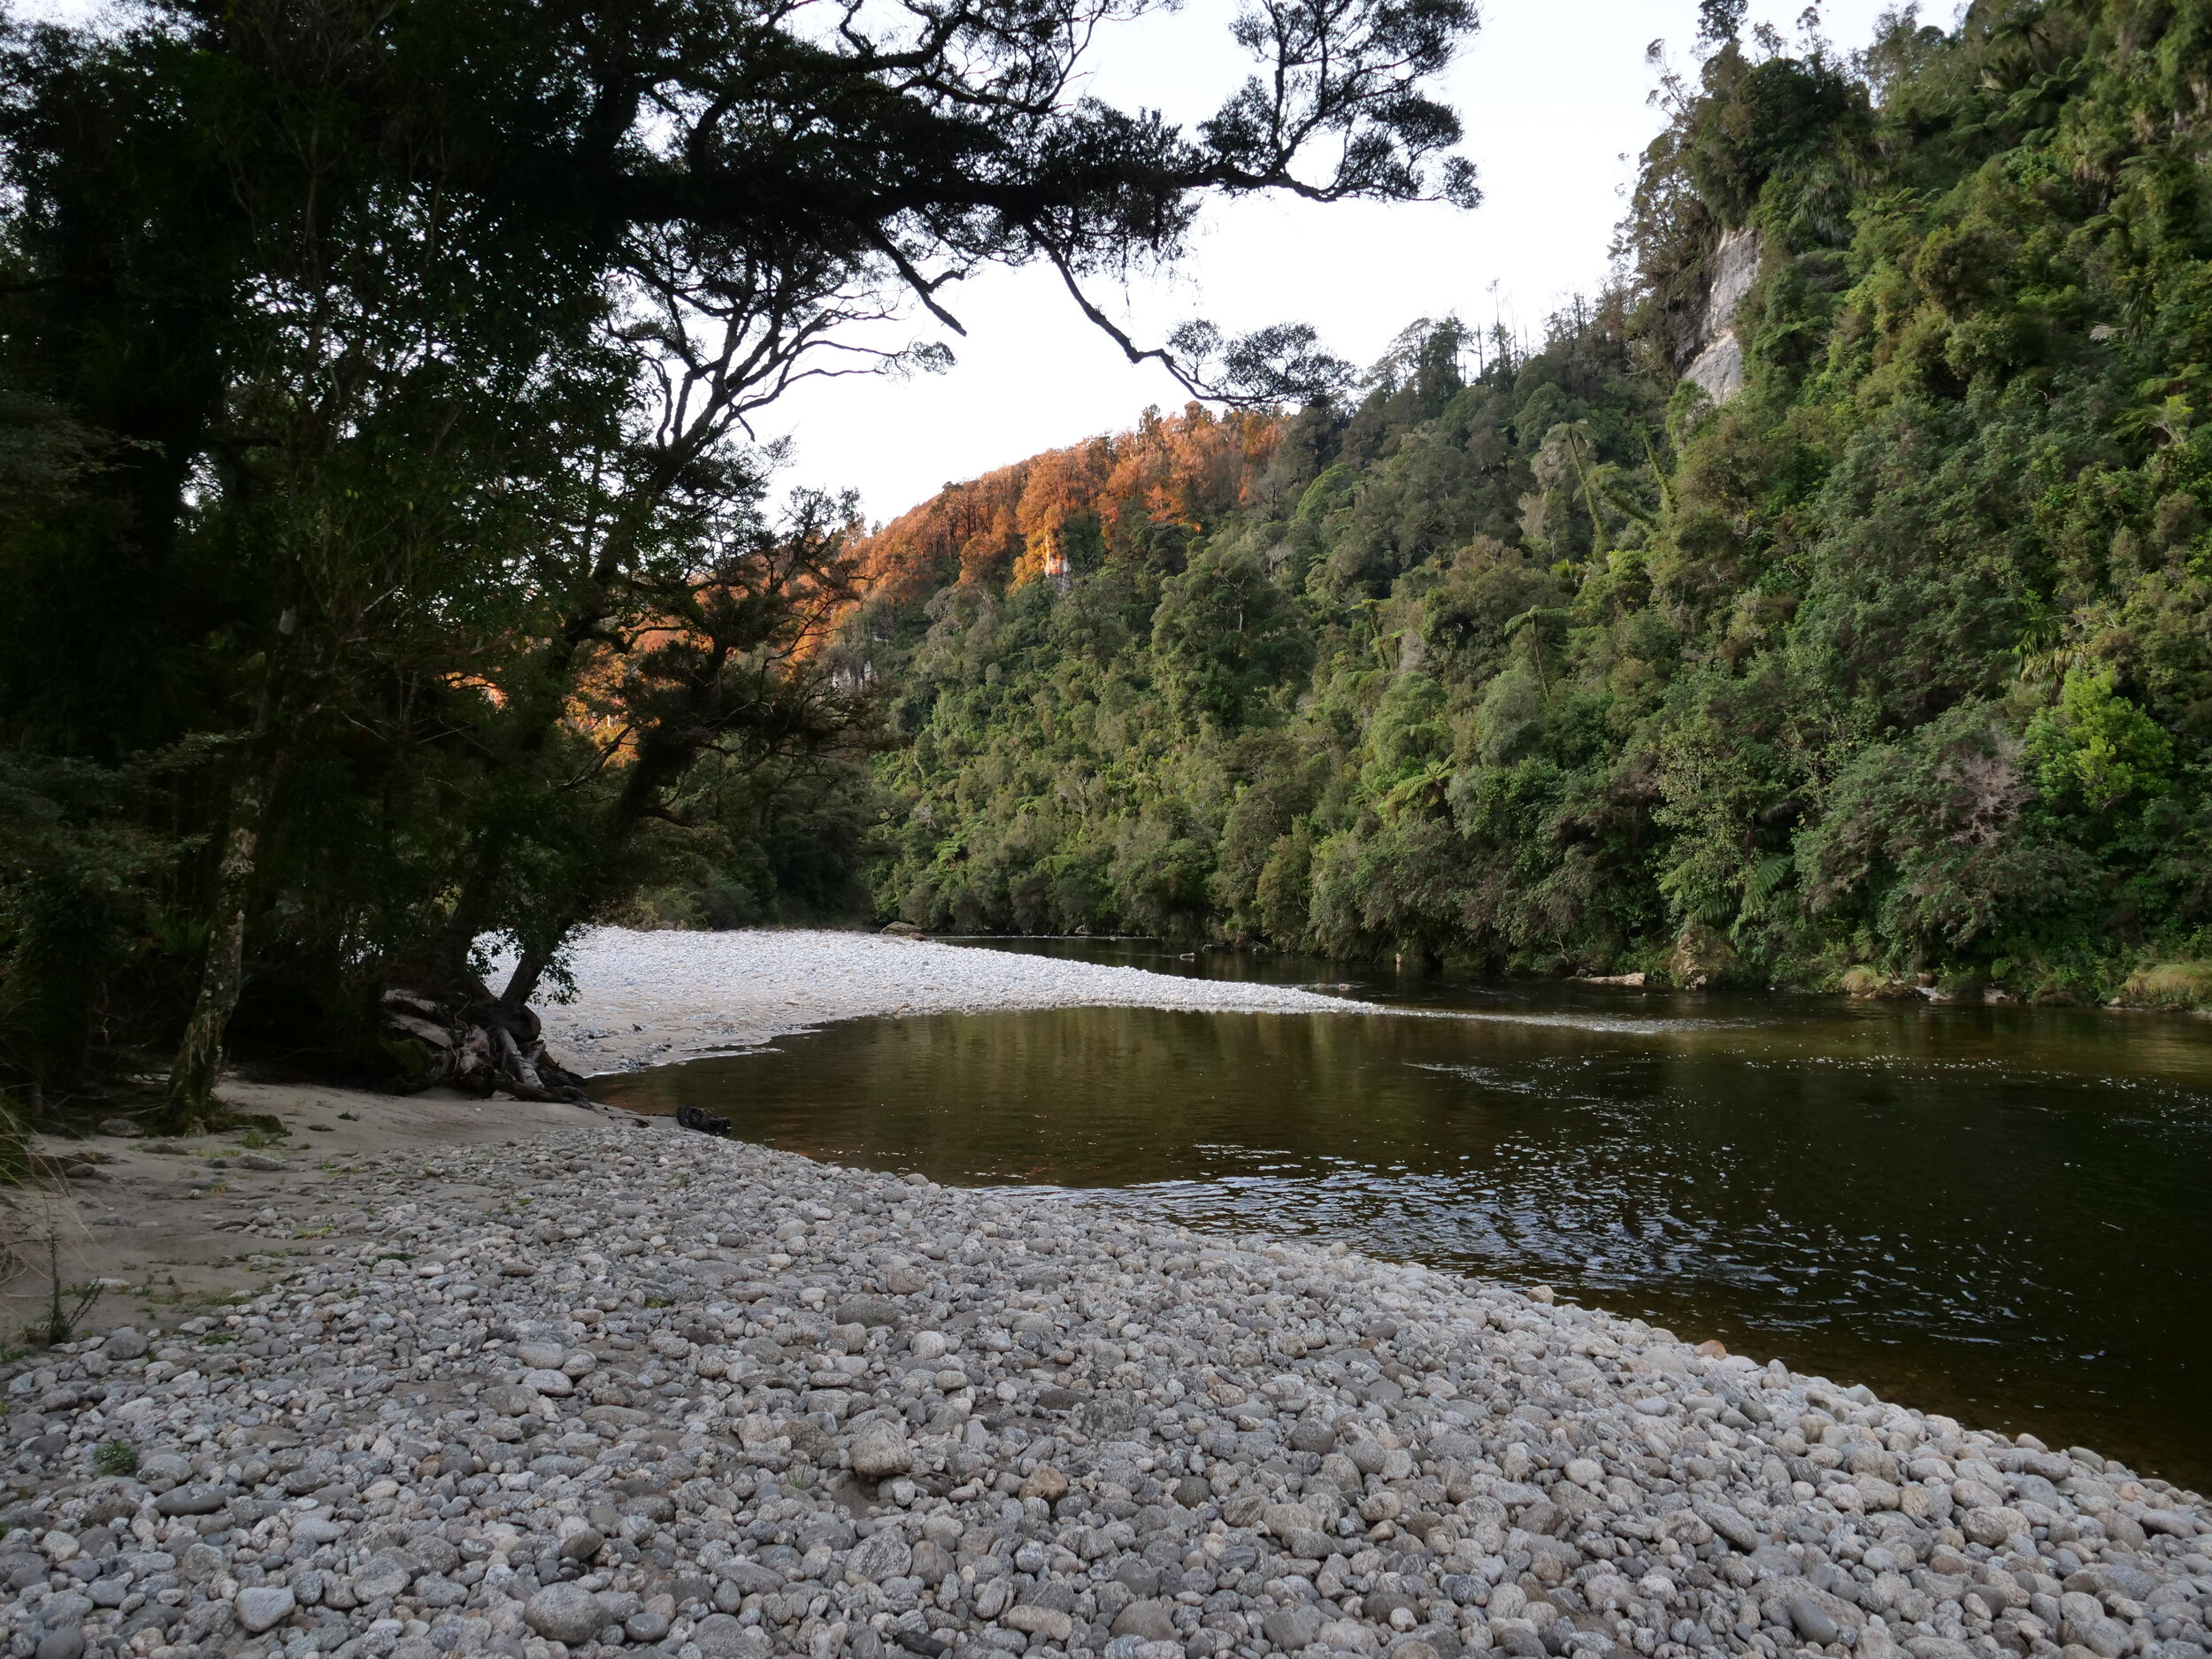 The Waitakere River